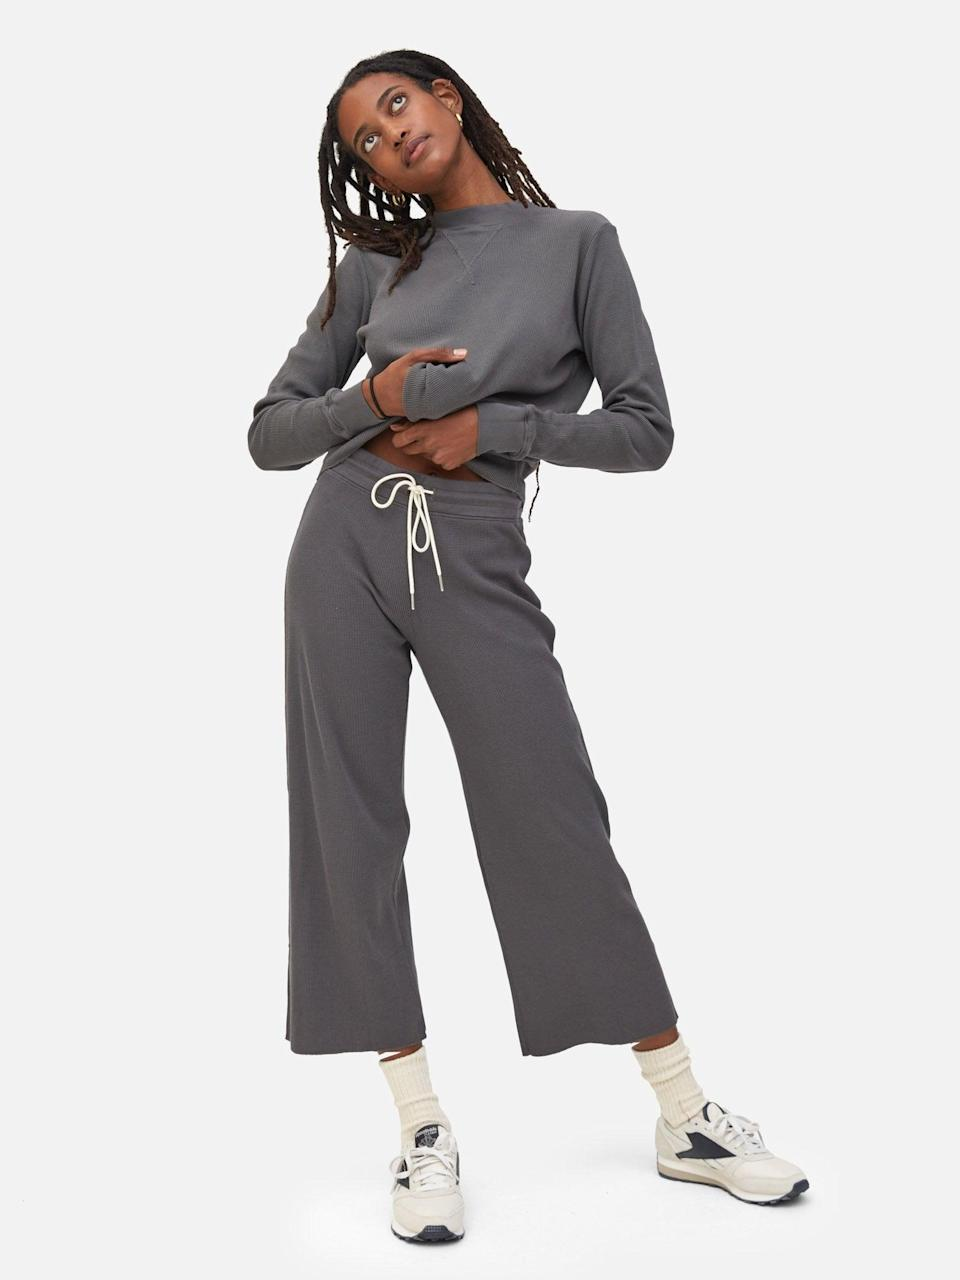 """<h2>Mate Organic Thermal Wide-Leg Pant & Boxy Crop</h2><br><strong>Available Sizes: XS-3X</strong><br>Mate The Label offers a handful of incredibly cozy, cute, and eco-conscious waffle/thermal-style knits that can be mix and matched for the ultimate stay-at-home look. We particularly love the brand's wide-leg pants paired with its boxy crop in this soothing slate-blue hue.<br><br><em>Shop <strong><a href=""""https://matethelabel.com/search?type=product&q=waffle"""" rel=""""nofollow noopener"""" target=""""_blank"""" data-ylk=""""slk:Mate The Label"""" class=""""link rapid-noclick-resp"""">Mate The Label</a></strong></em><br><br><strong>Mate</strong> Organic Thermal Wide Leg Pant, $, available at <a href=""""https://go.skimresources.com/?id=30283X879131&url=https%3A%2F%2Fmatethelabel.com%2Fproducts%2Forganic-thermal-wide-leg-pant-charcoal"""" rel=""""nofollow noopener"""" target=""""_blank"""" data-ylk=""""slk:Mate"""" class=""""link rapid-noclick-resp"""">Mate</a><br><br><strong>Mate</strong> Organic Thermal Boxy Crop, $, available at <a href=""""https://go.skimresources.com/?id=30283X879131&url=https%3A%2F%2Fmatethelabel.com%2Fproducts%2Forganic-thermal-boxy-crop-charcoal"""" rel=""""nofollow noopener"""" target=""""_blank"""" data-ylk=""""slk:Mate"""" class=""""link rapid-noclick-resp"""">Mate</a>"""